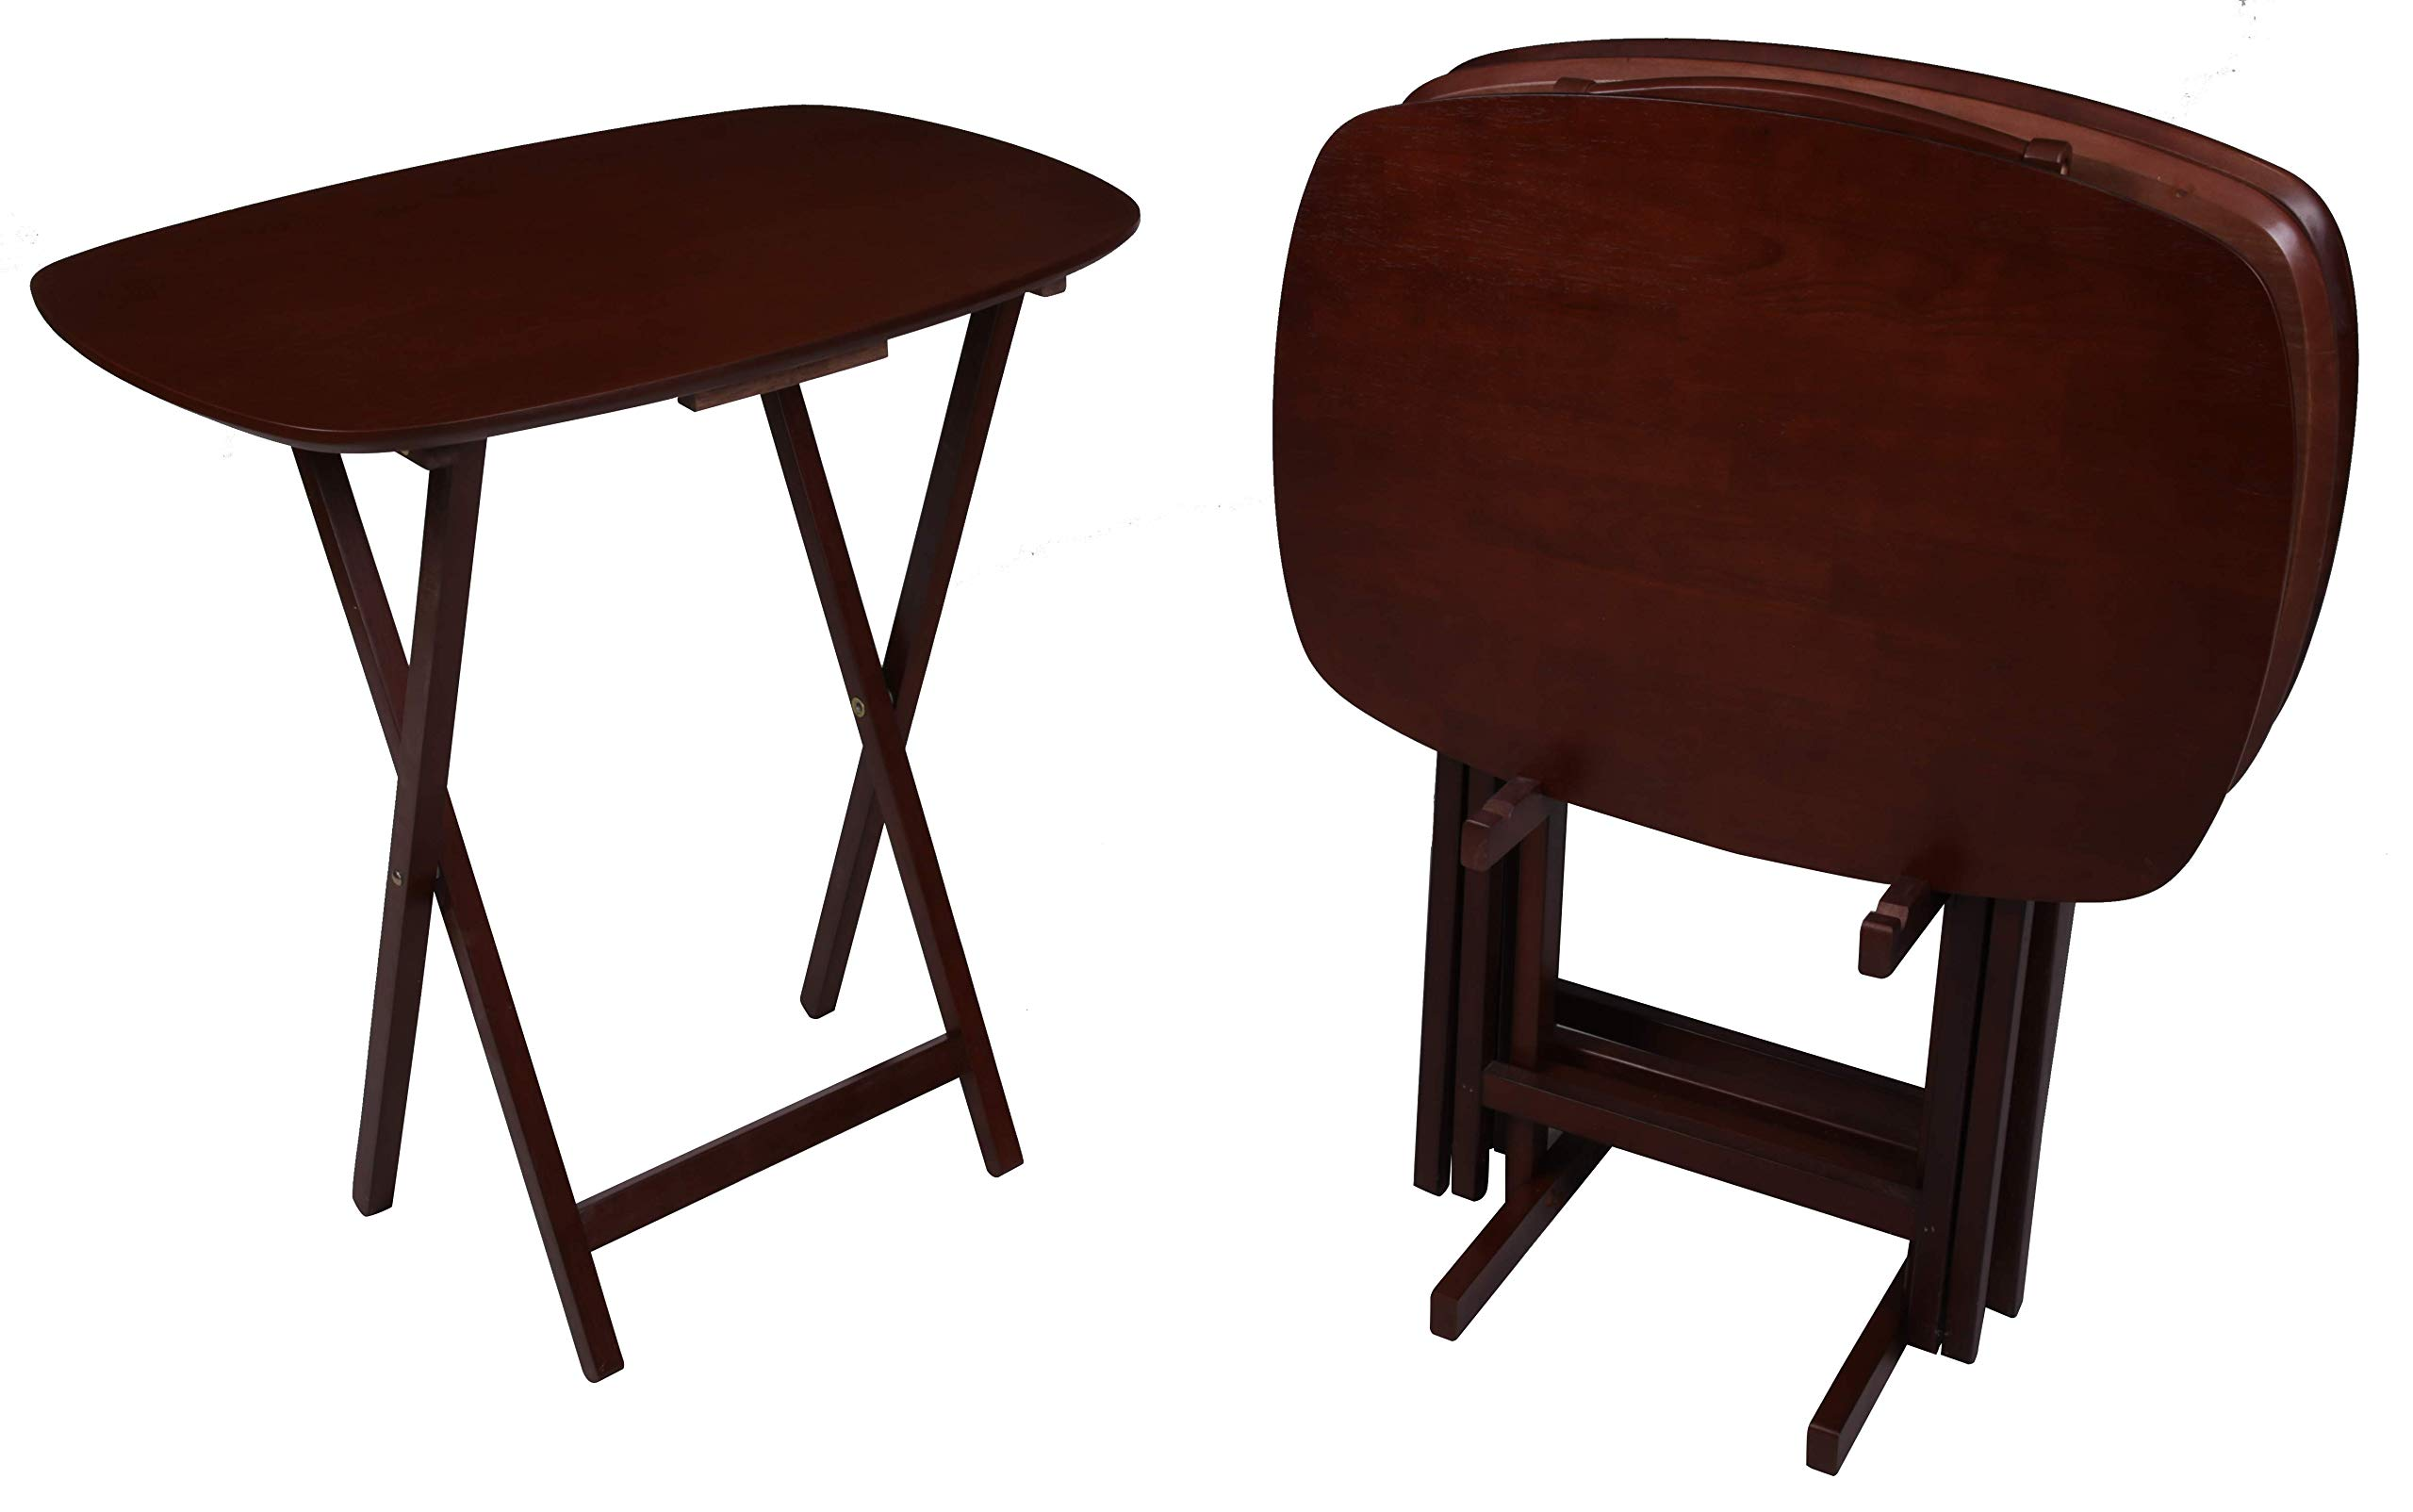 PJ Wood 5-Piece Large Folding TV Tray & Snack Table - Mahogany by PJ Wood